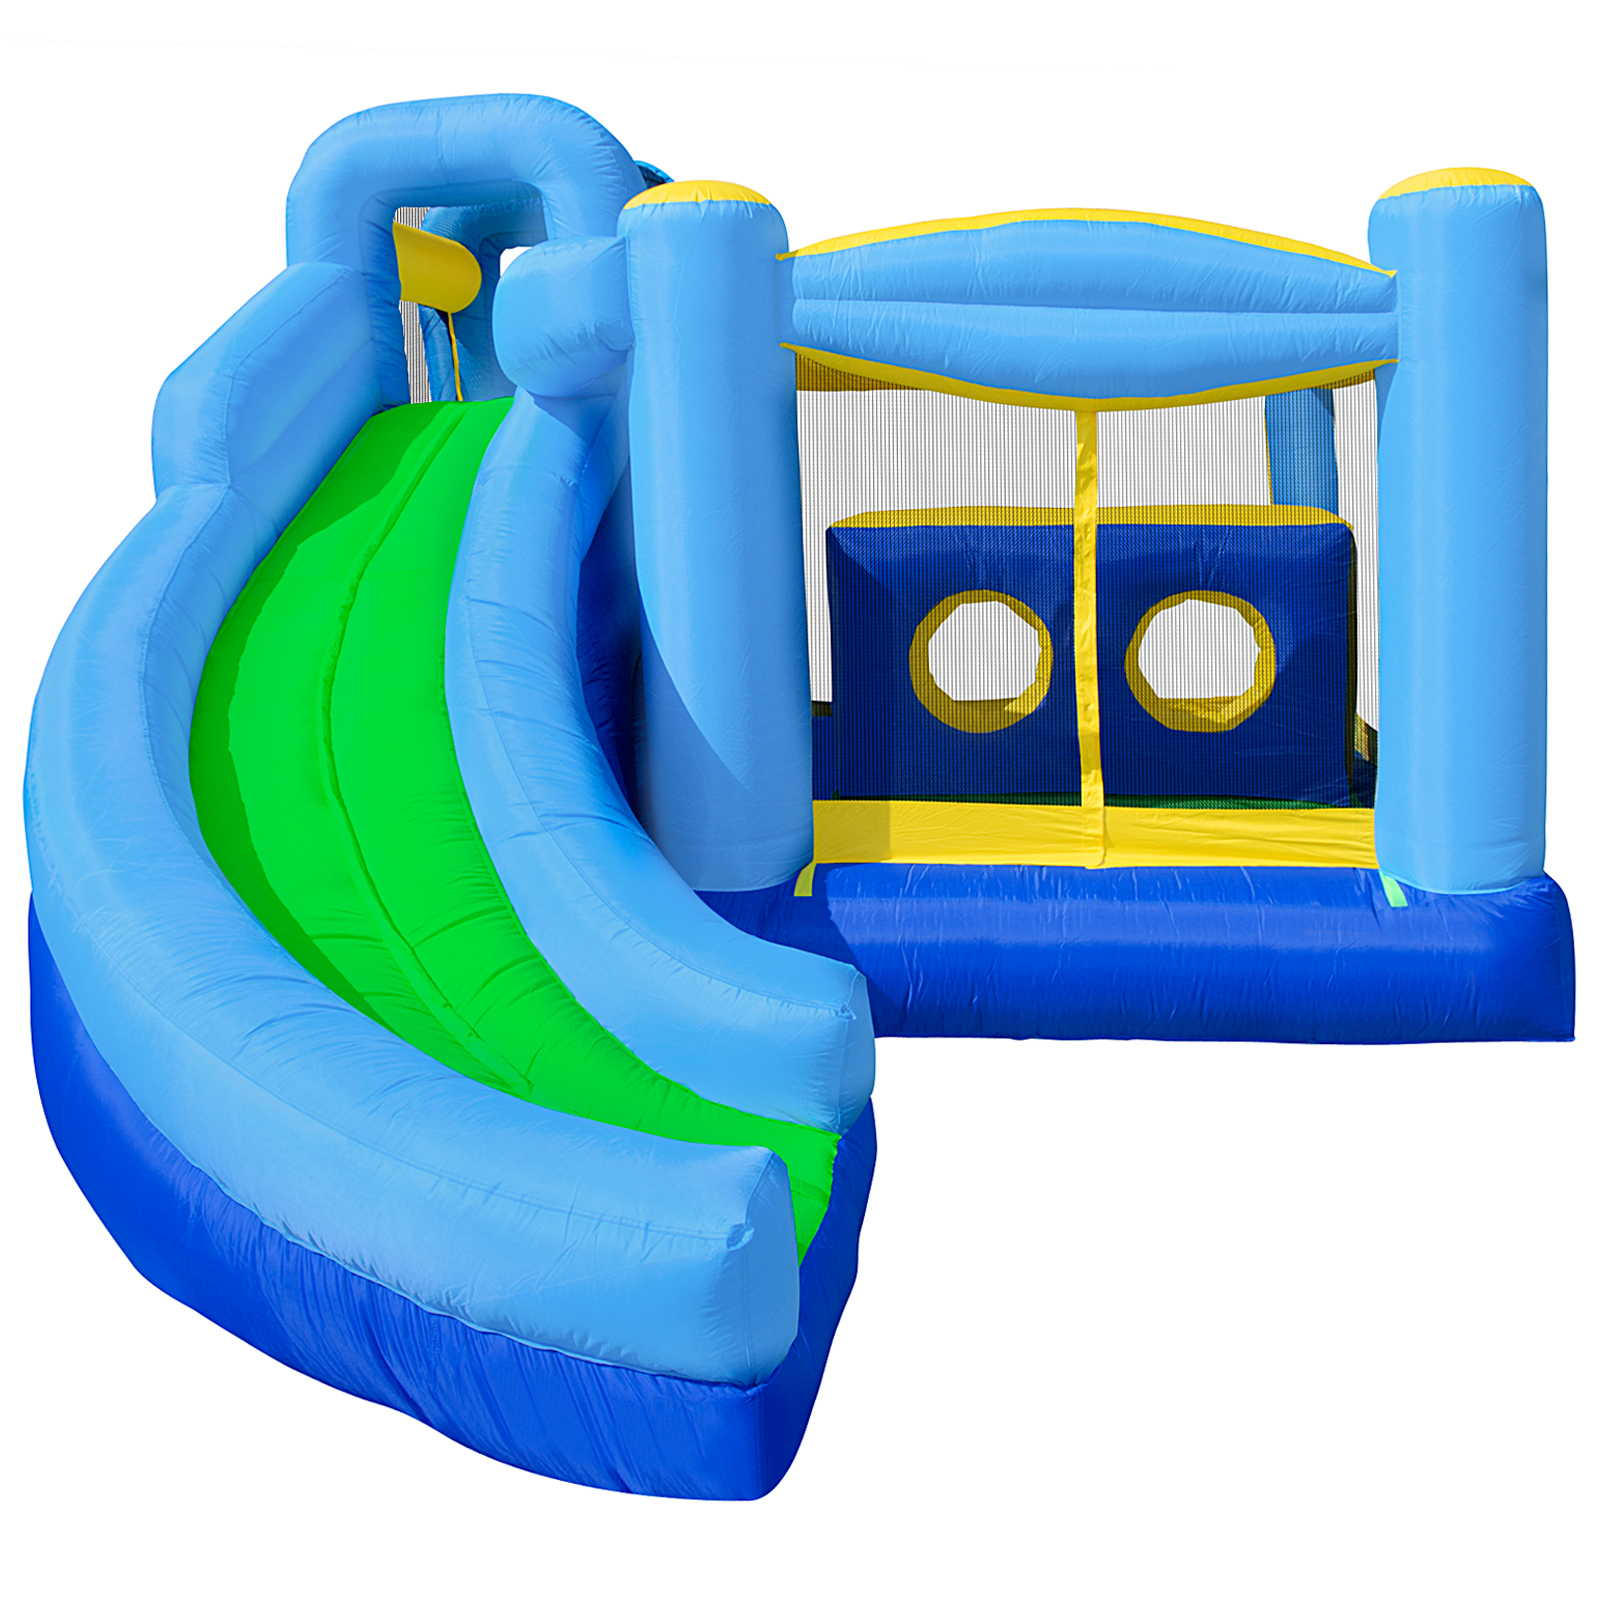 Cloud 9 Quad Combo Bounce House - Inflatable Bouncer with Climbing Wall, Slide and Obstacle Tunnel with Blower